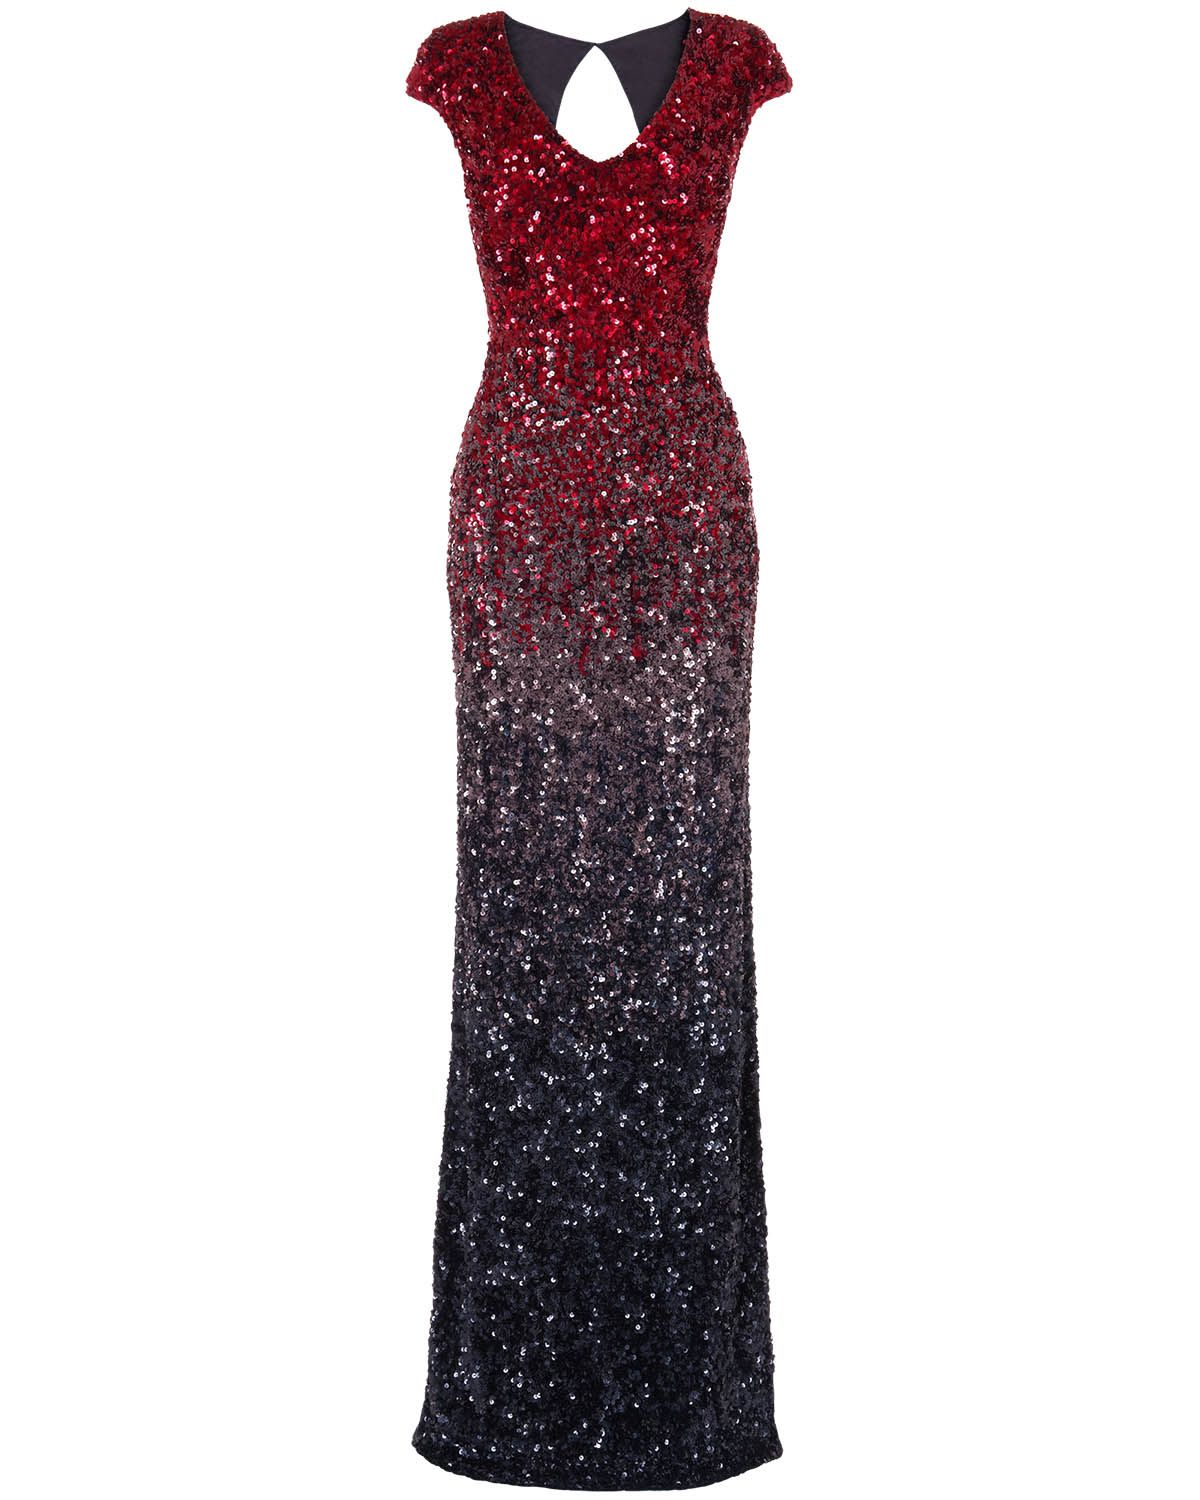 Colette sequin full length dress a sequin dress perfect for the